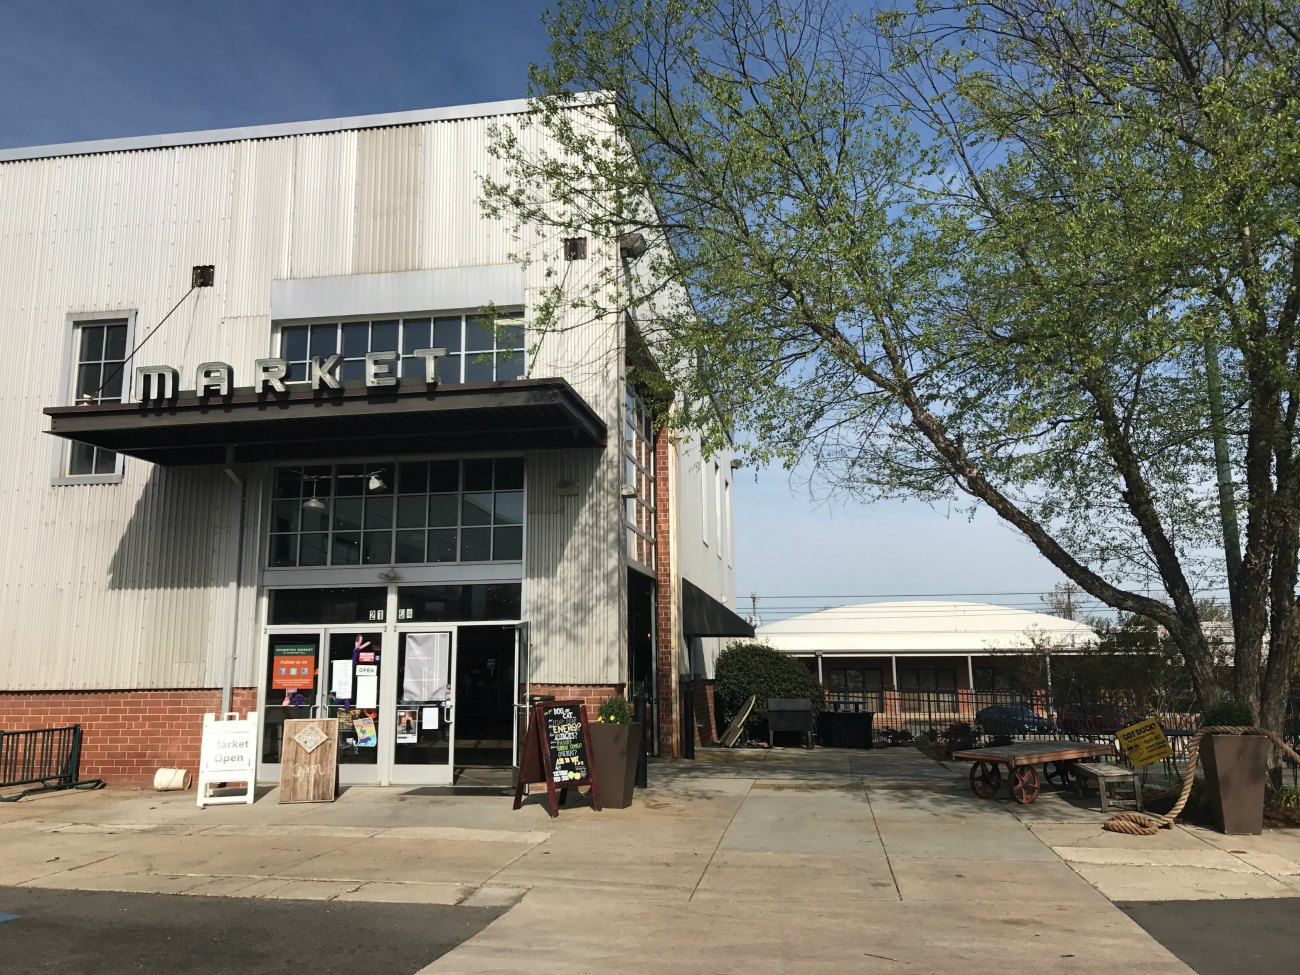 Atherton Market opens in its new location this weekend. Here's what to expect